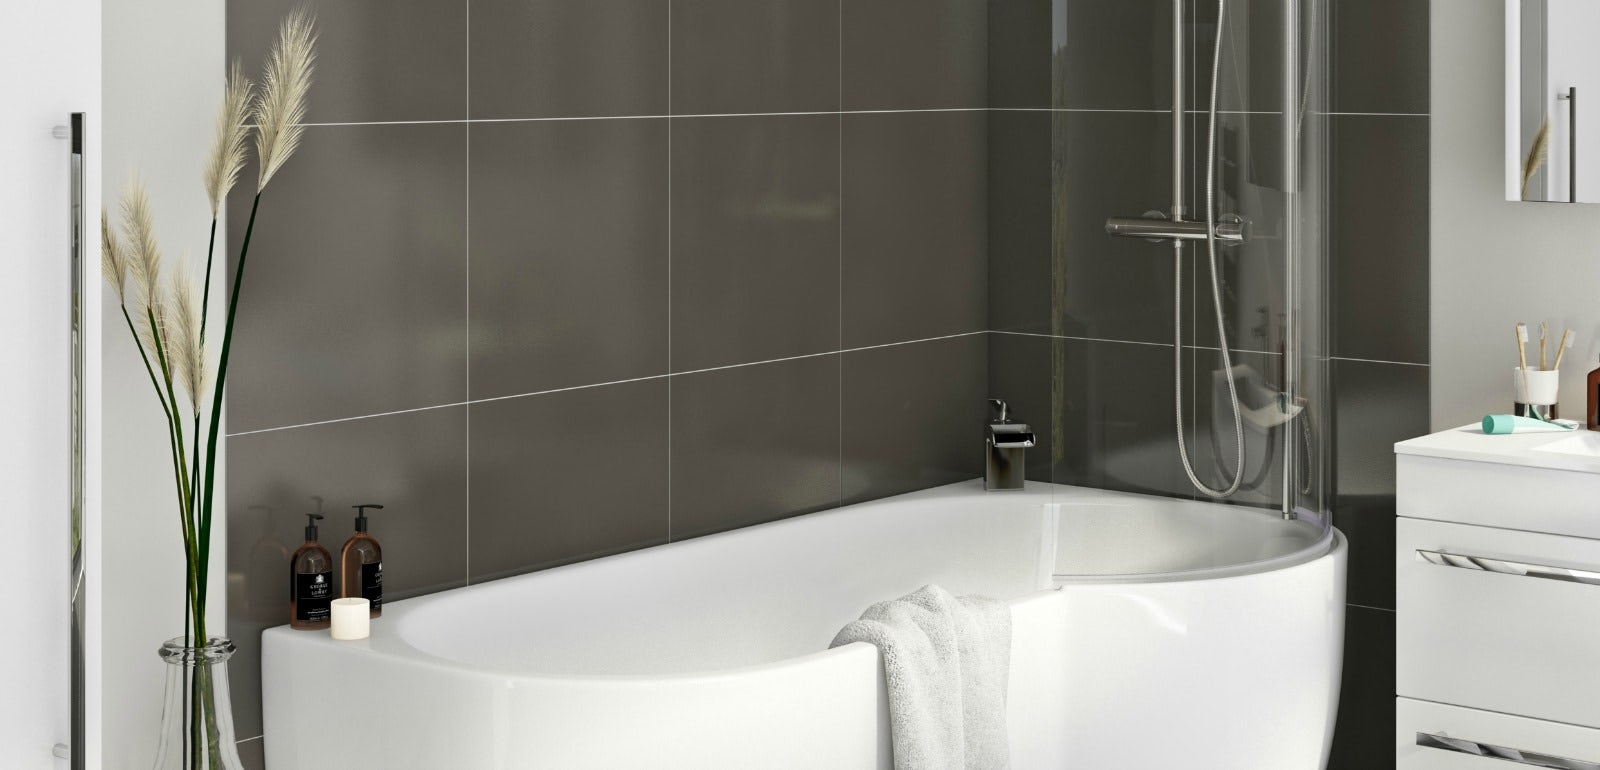 How Much Should You Pay To Have A Bathroom Fitted VictoriaPlumcom - Average cost to fit a bathroom